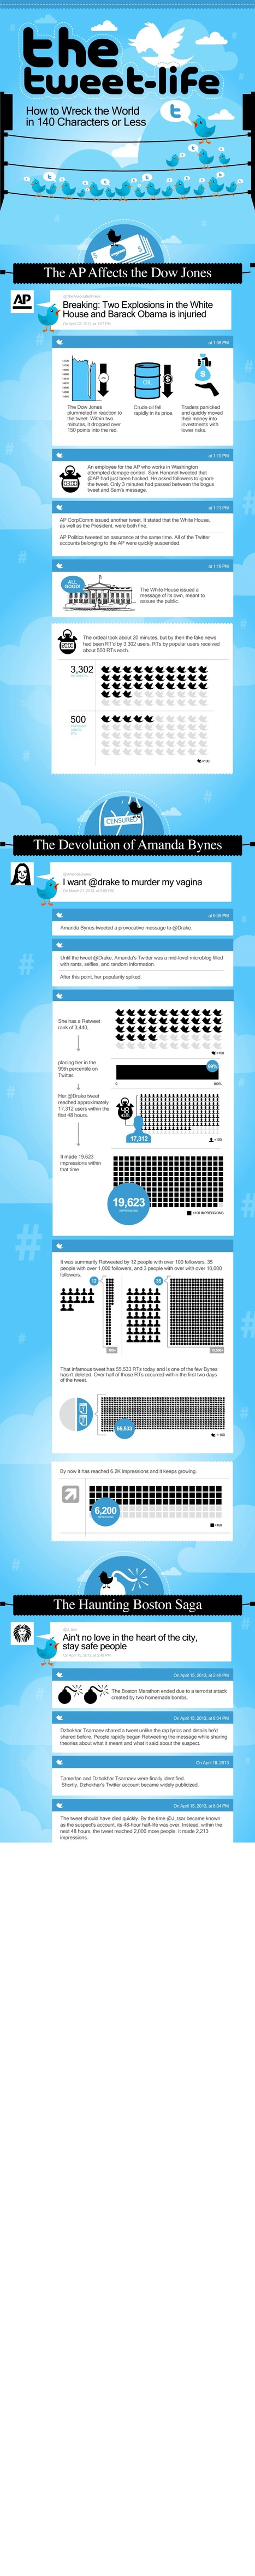 30+ of the Most Amazing Twitter Statistics #INFOGRAPHIC | Surviving Social Chaos | Scoop.it